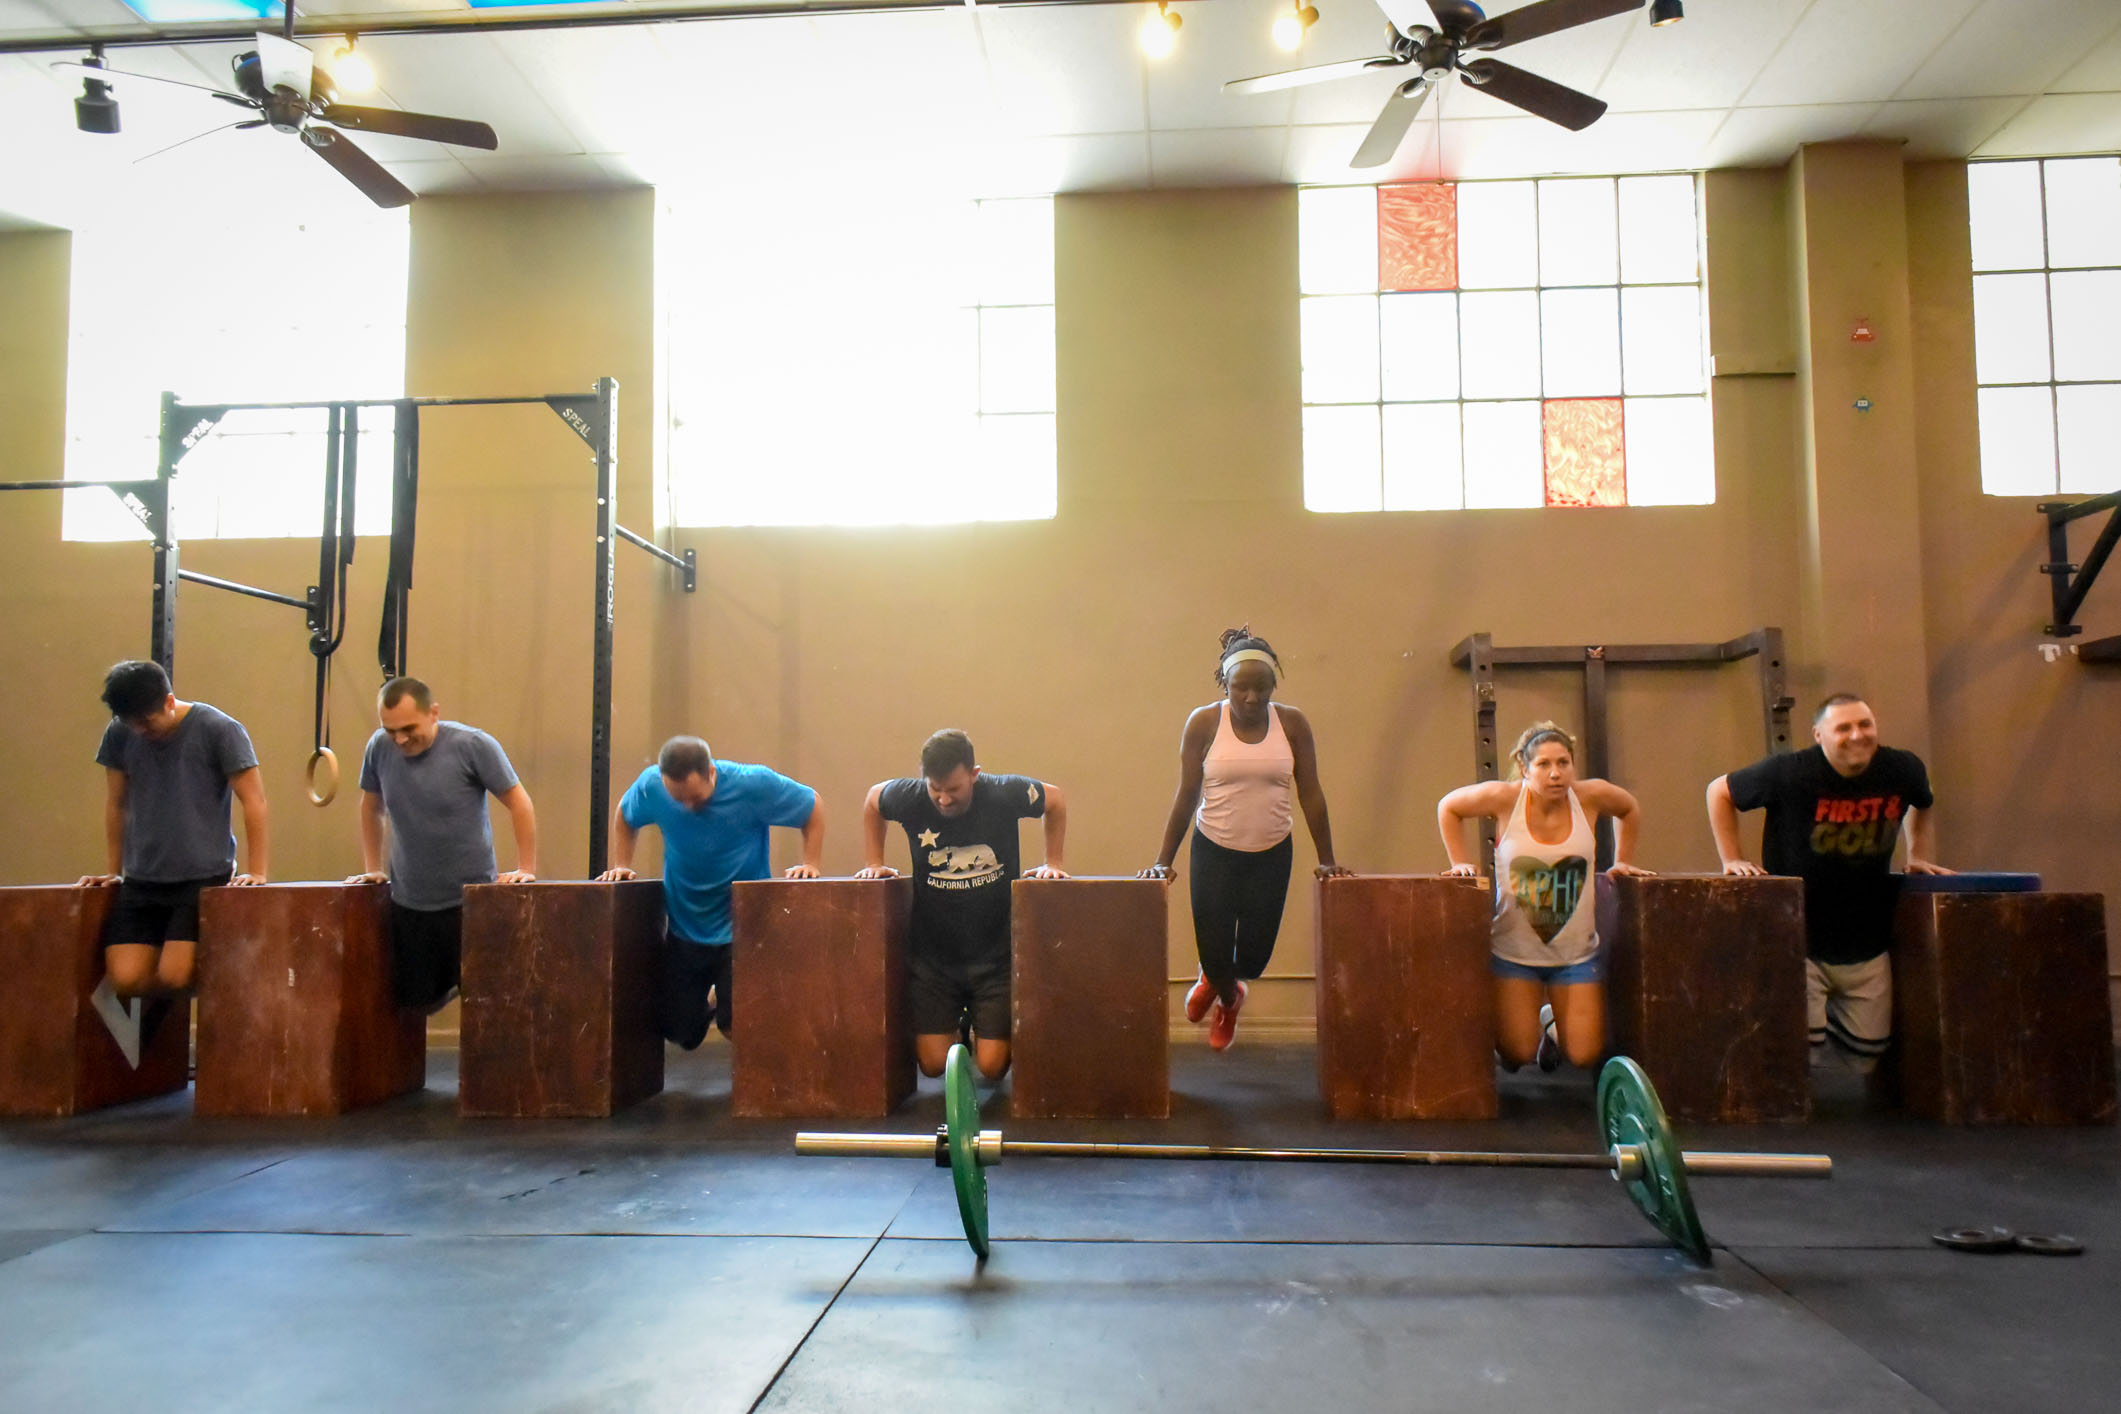 Noon class having fun with BOX DIPS under bright sunlight beaming through the windows. Michaela and I love coaching and working out at CrossFit Silicon Valley!